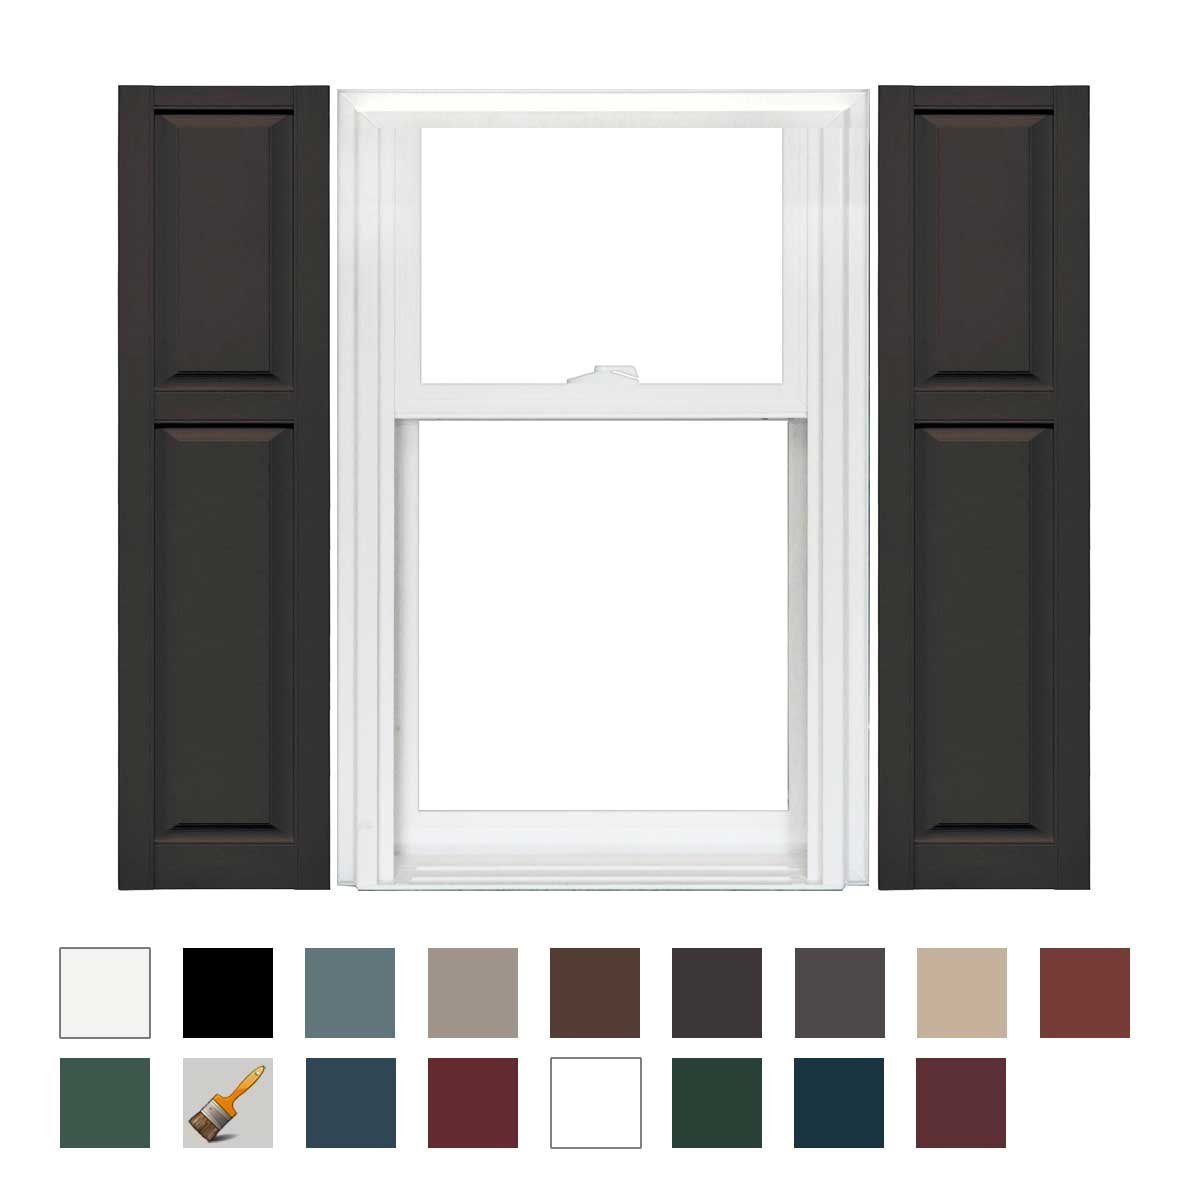 Mid America Williamsburg Vinyl Cottage Style Standard Shutter 67'' Long - 1 Pair (14-3/4in. 010 Musket Brown) by Mid America